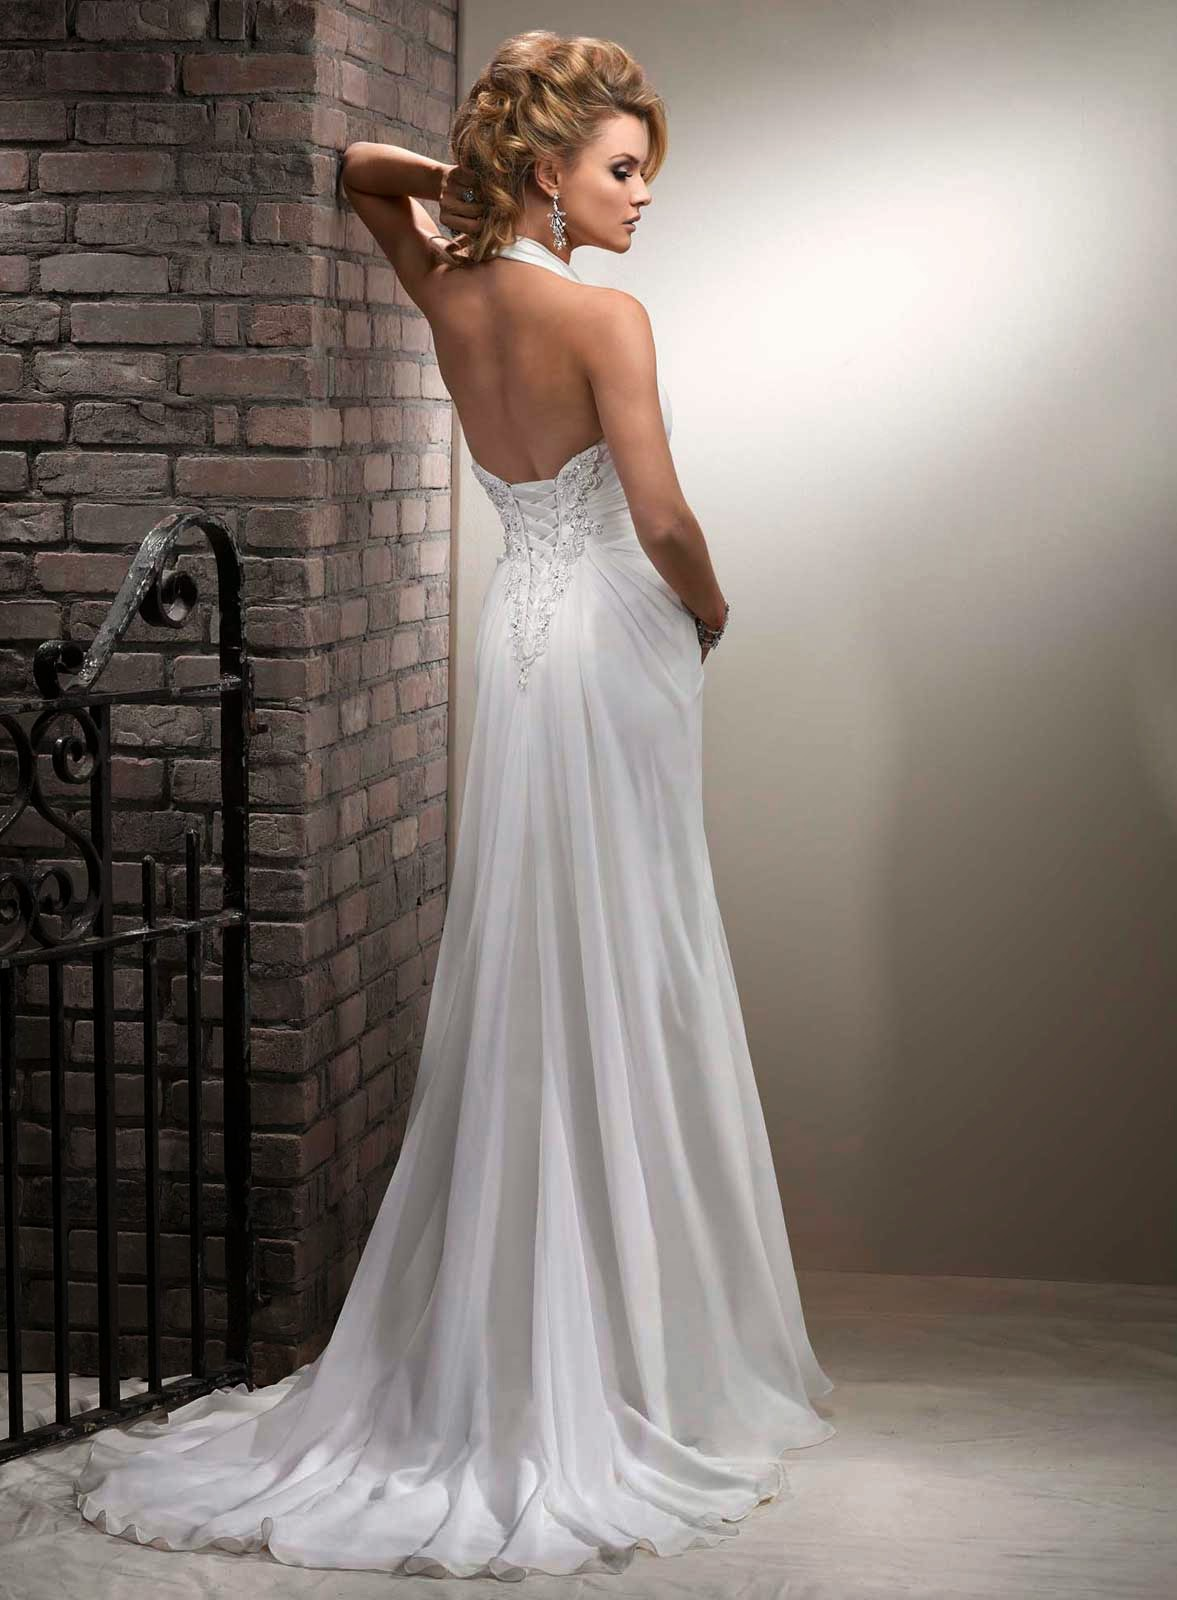 Casual wedding dresses ideas for older brides for Older brides wedding dresses